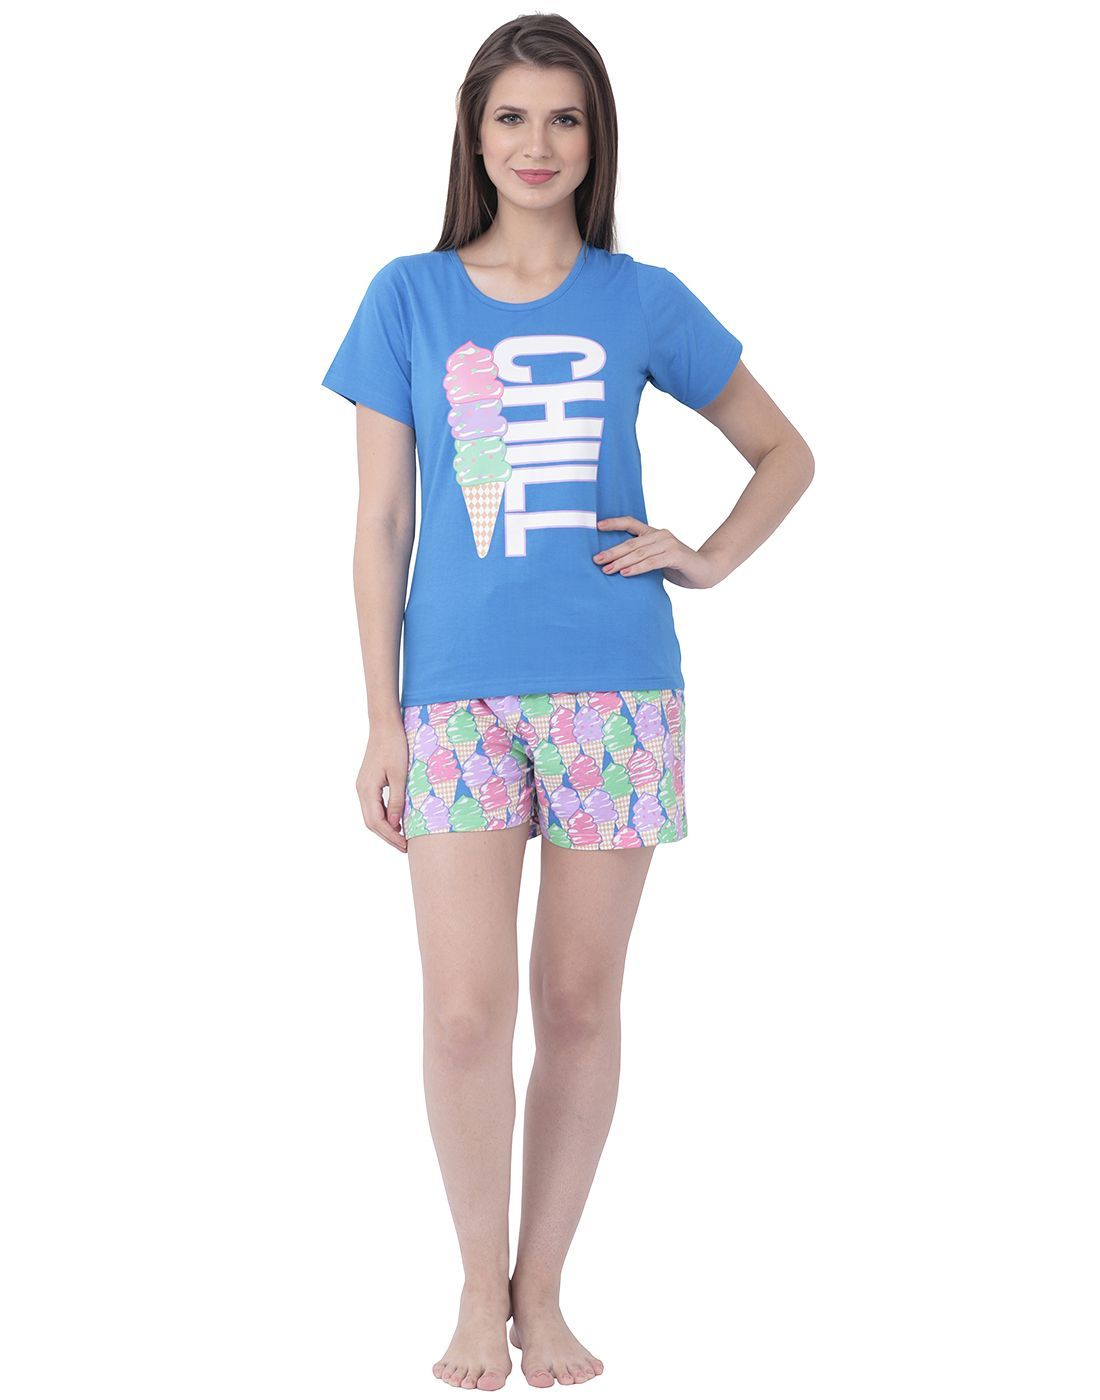 e57f3afddd Shop Sleepwear from Heart2Heart online at a discounted price at TLS!  https